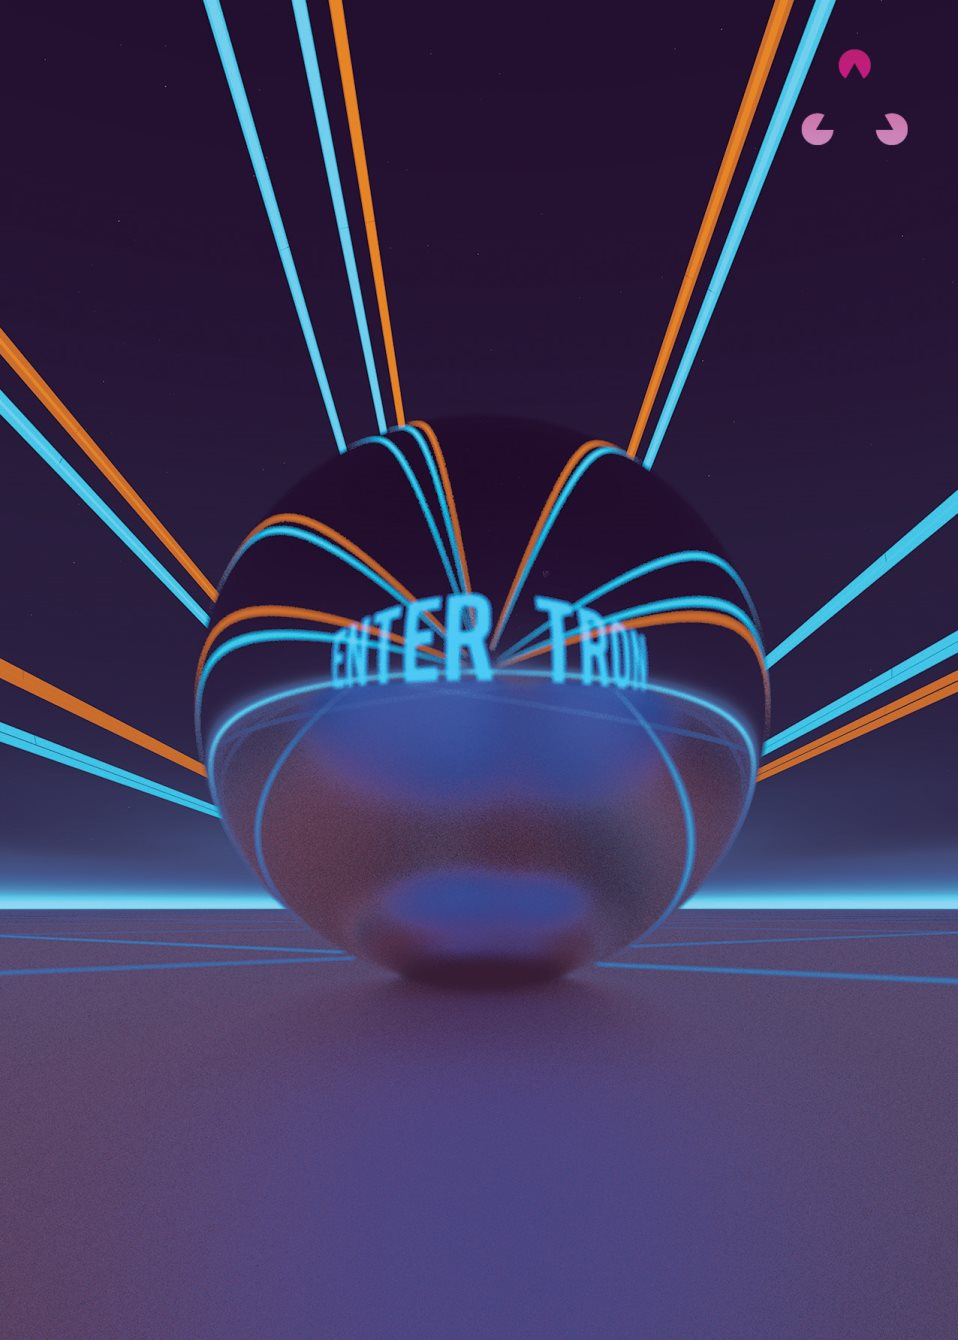 enter-tron-sphere.jpg